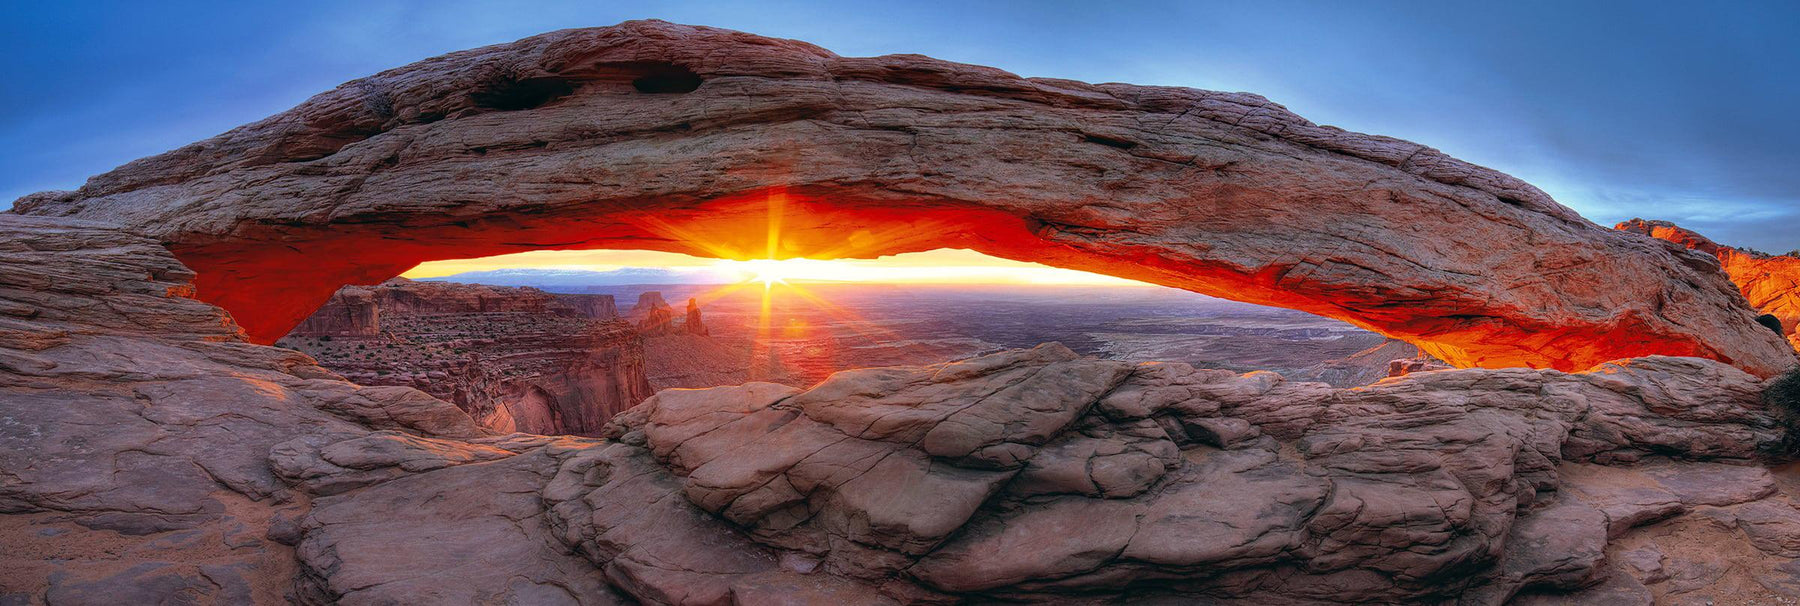 Sunburst shining through the stone arch and onto the rock valley of Canyonlands National Park Utah